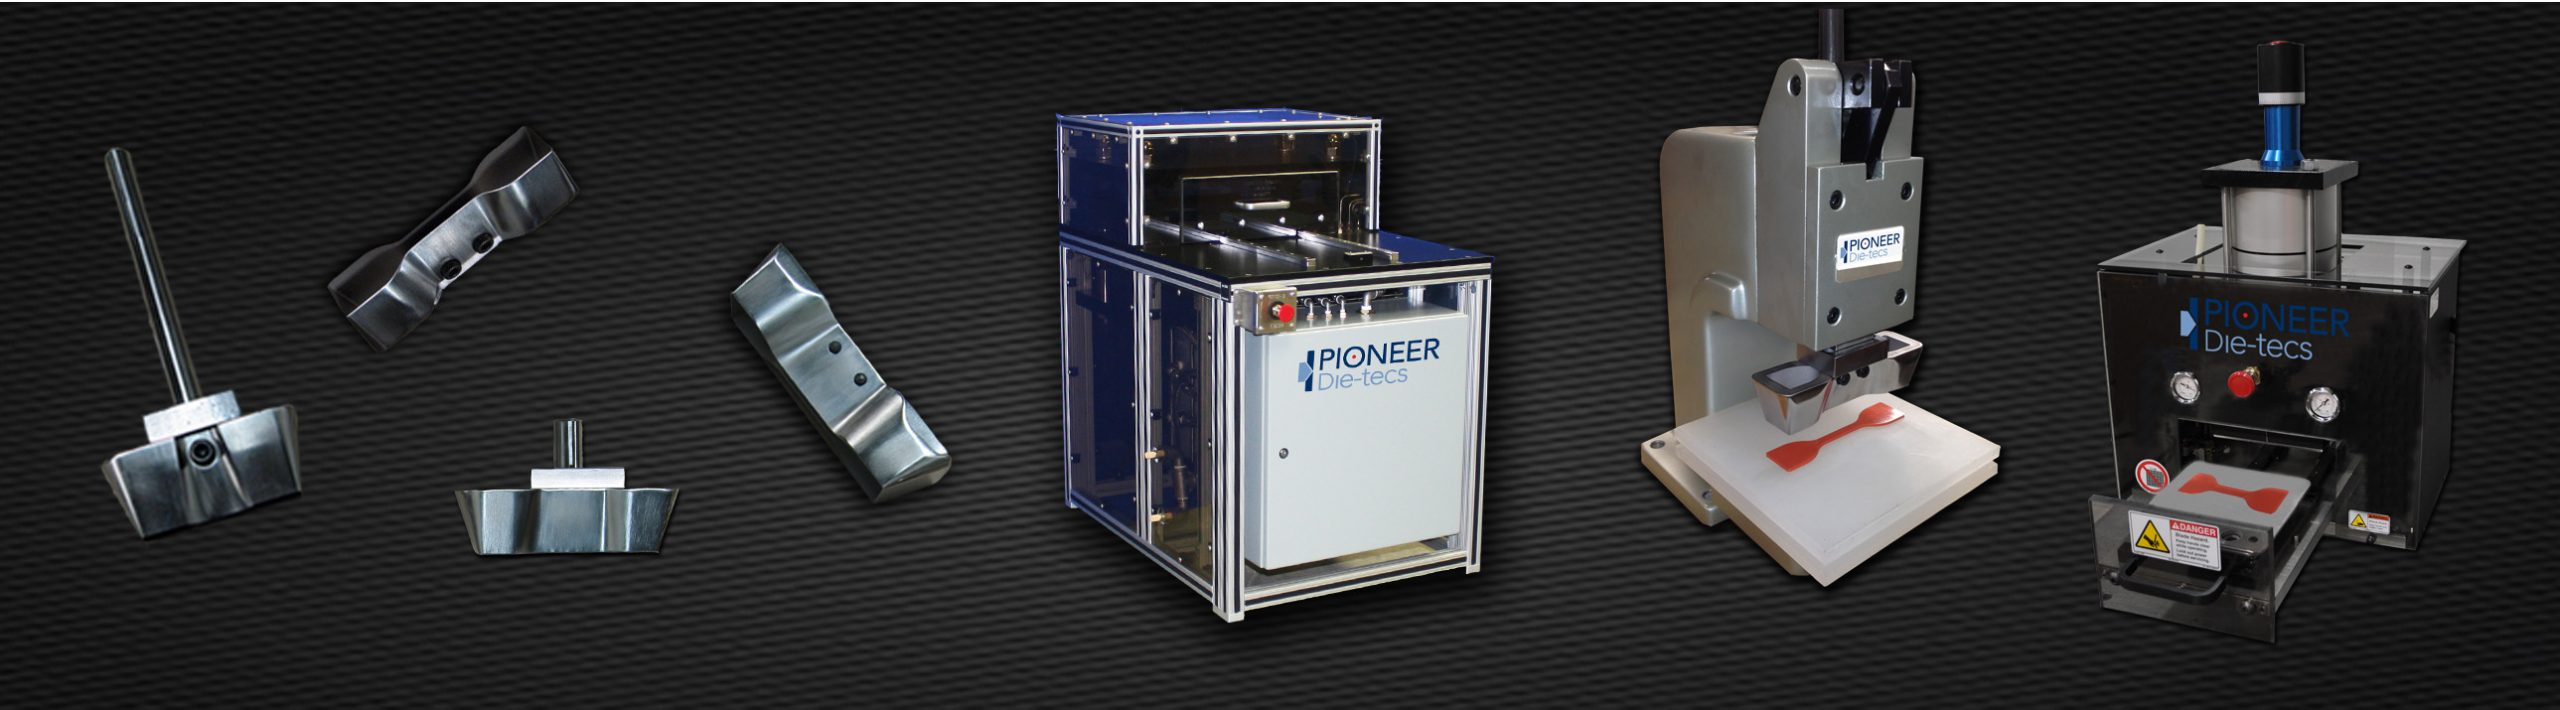 Pioneer-Dietecs die-cutting products